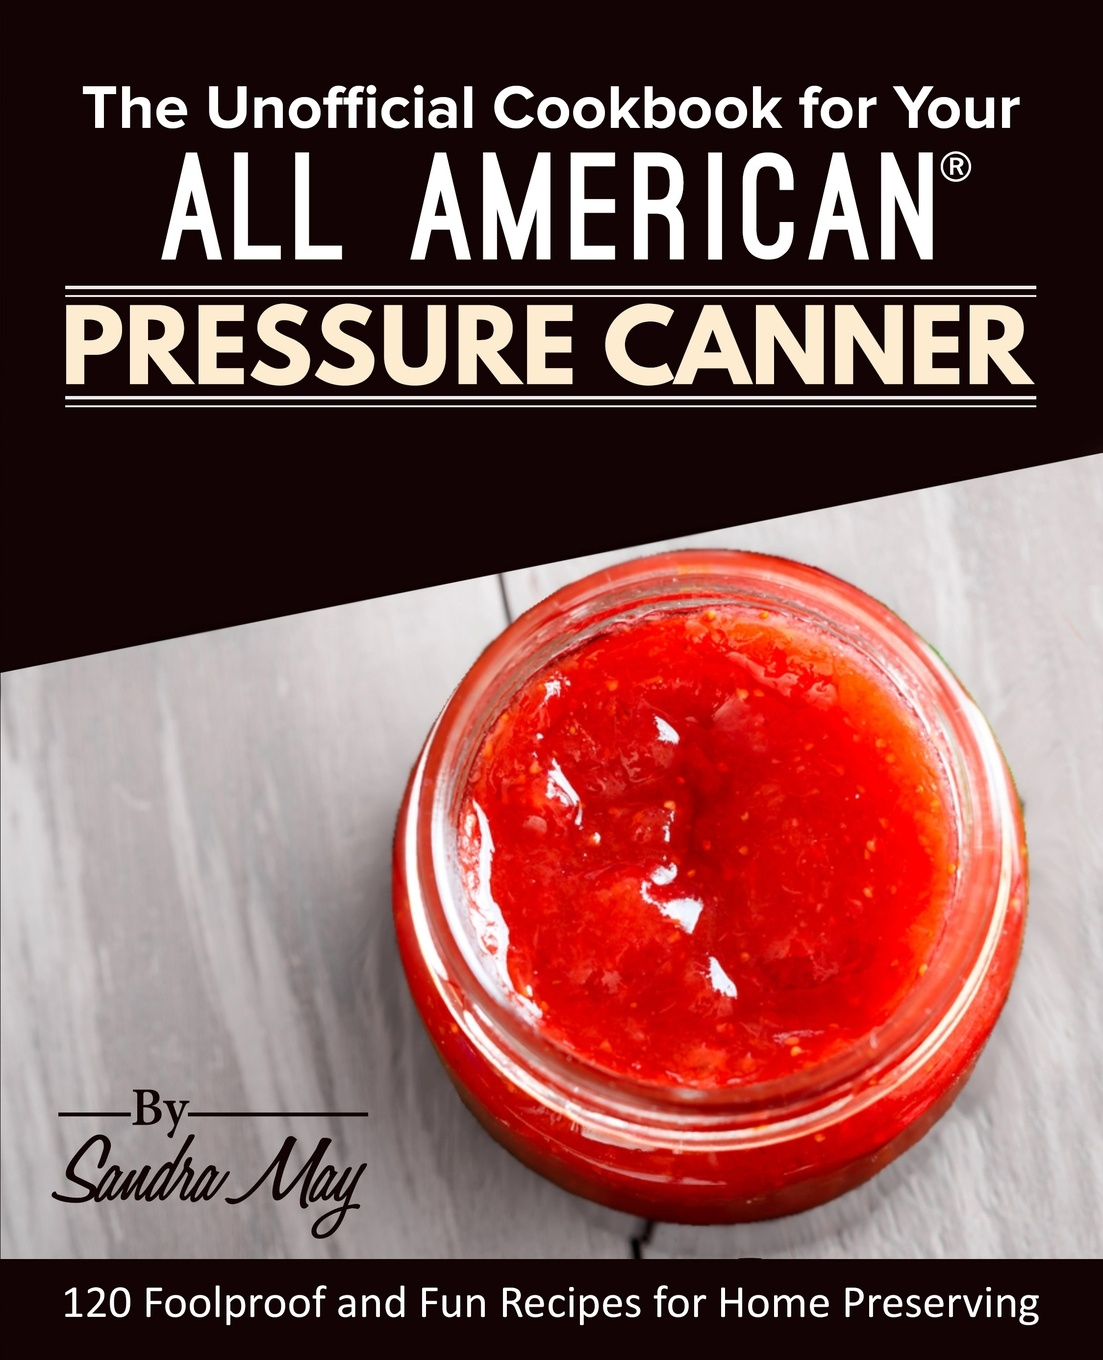 Sandra May The Unofficial Cookbook for Your All American. Pressure Canner. 120 Foolproof and Fun Recipes for Home Preserving cocktails fancy and delicious recipes for all tastes